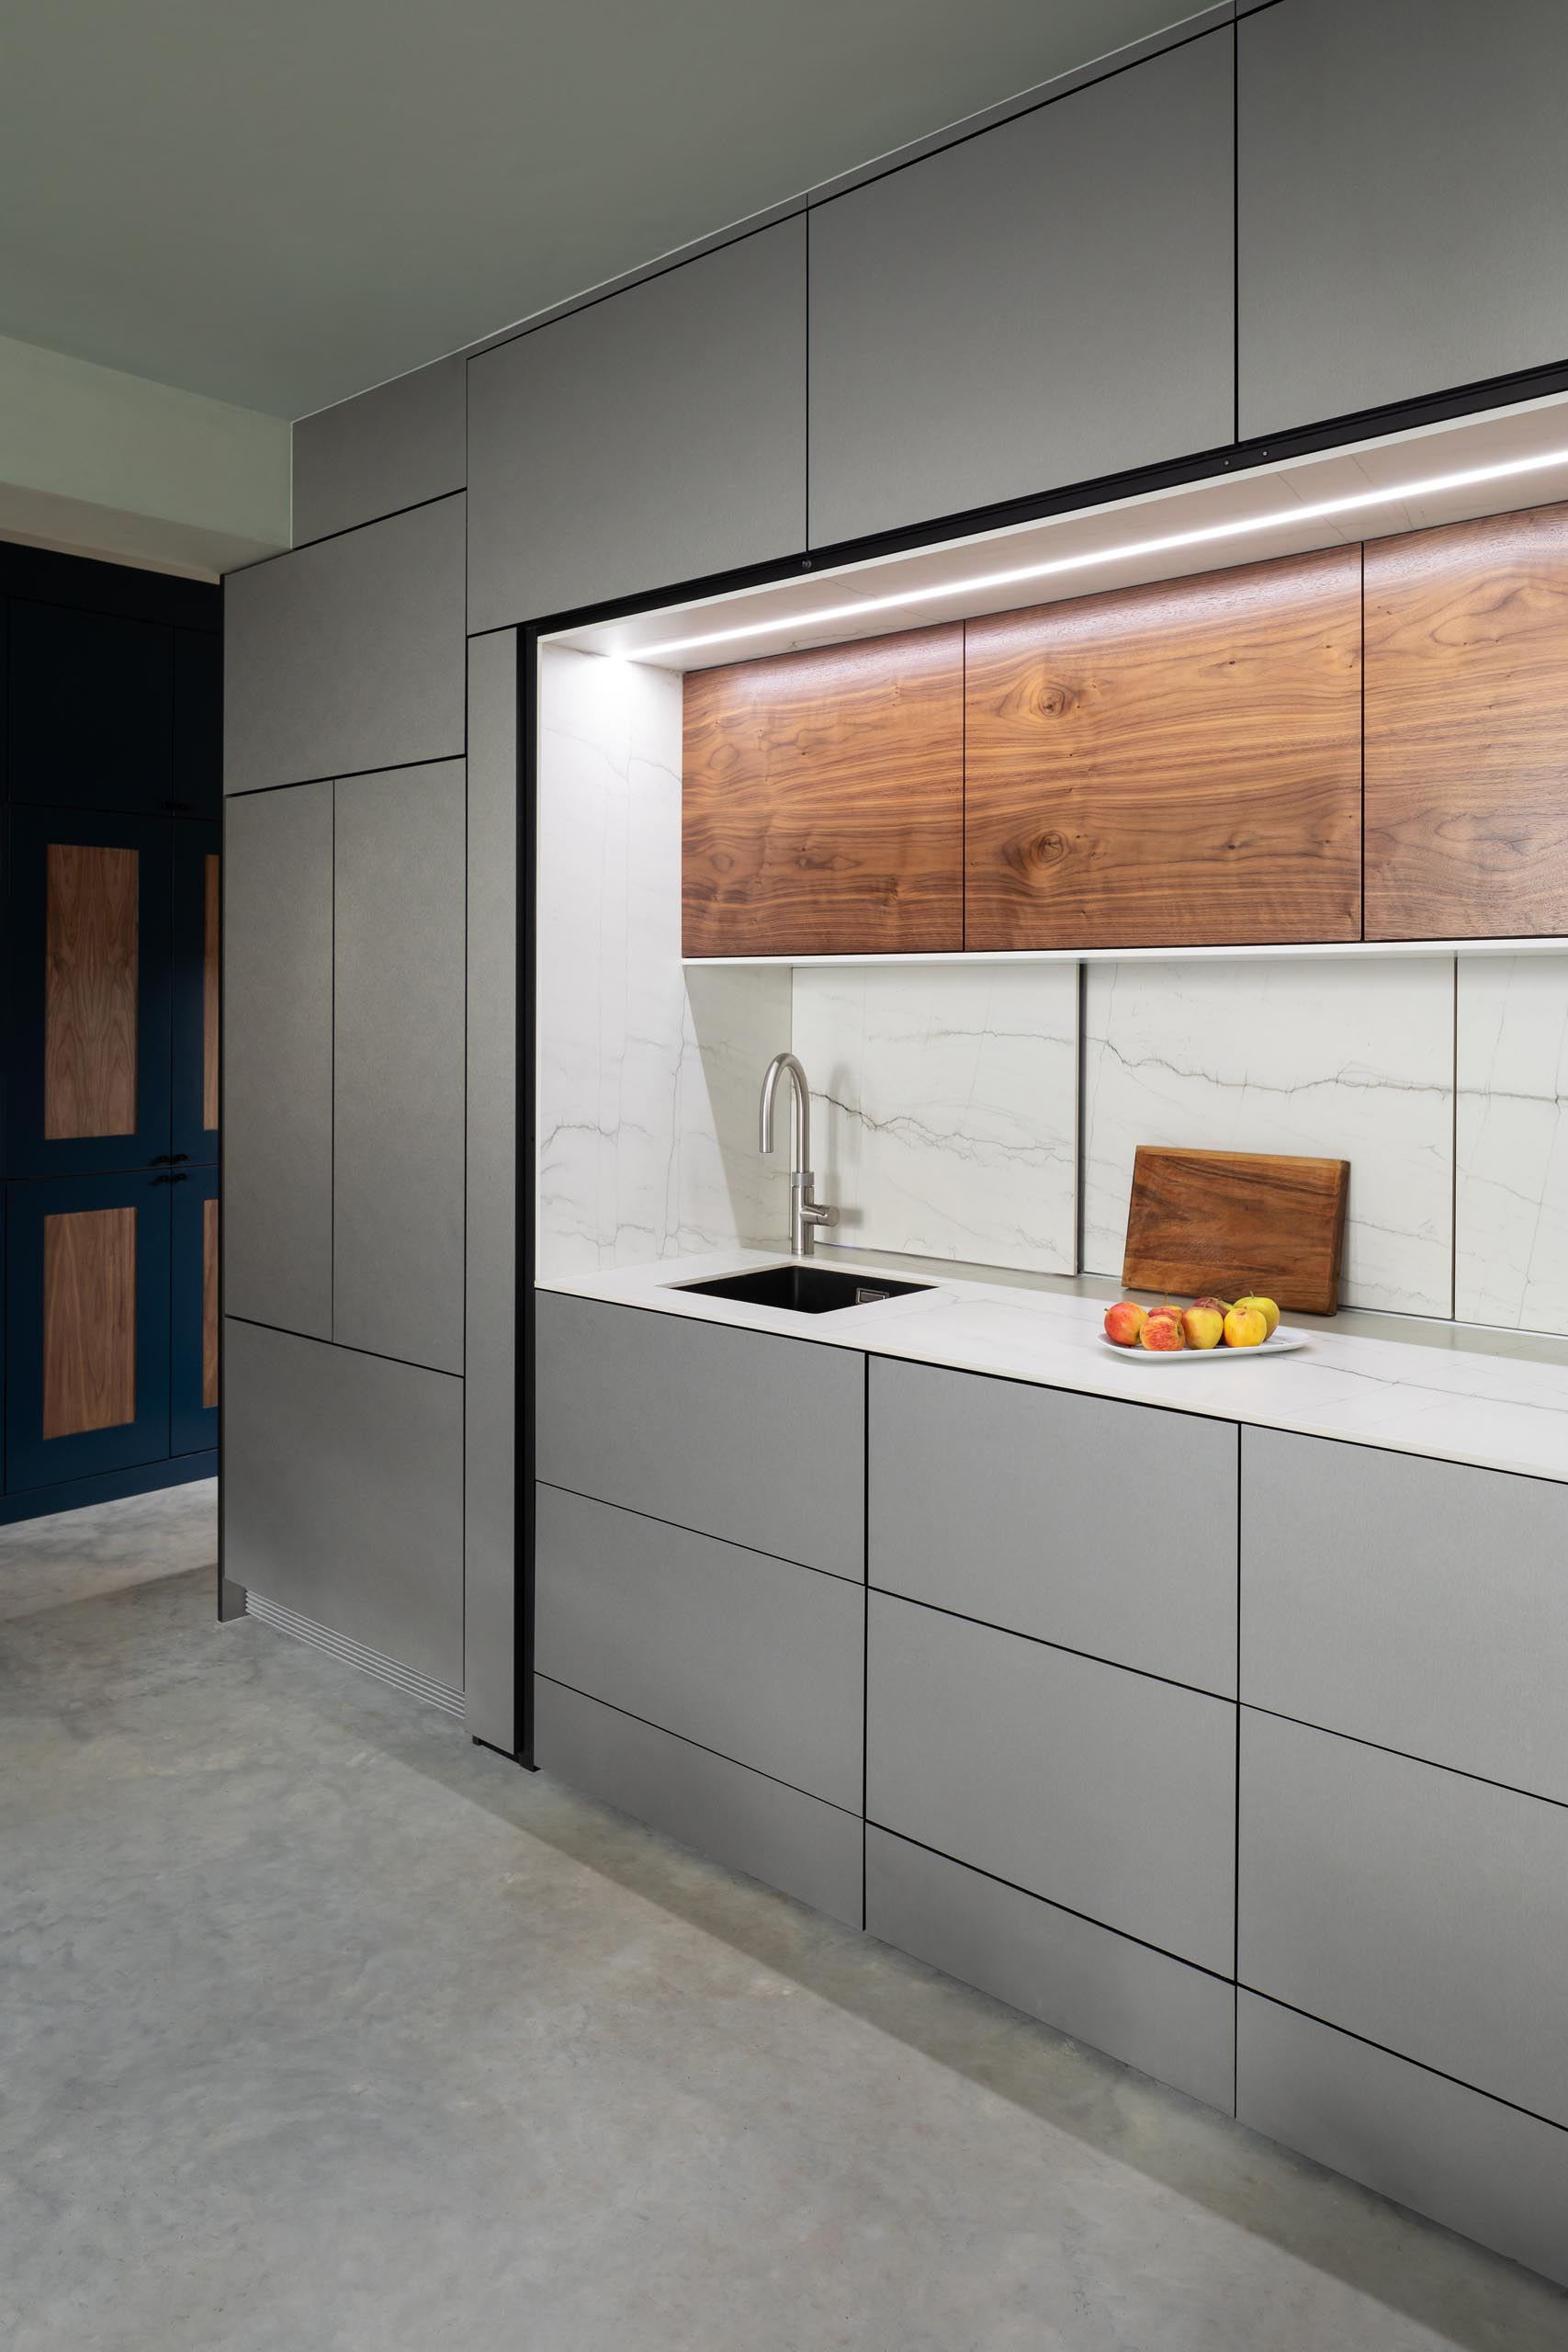 The main section of this modern kitchen includes a small sink, a cooktop, counter space, hidden lighting, drawers with minimalist fronts, and wood upper cabinets.